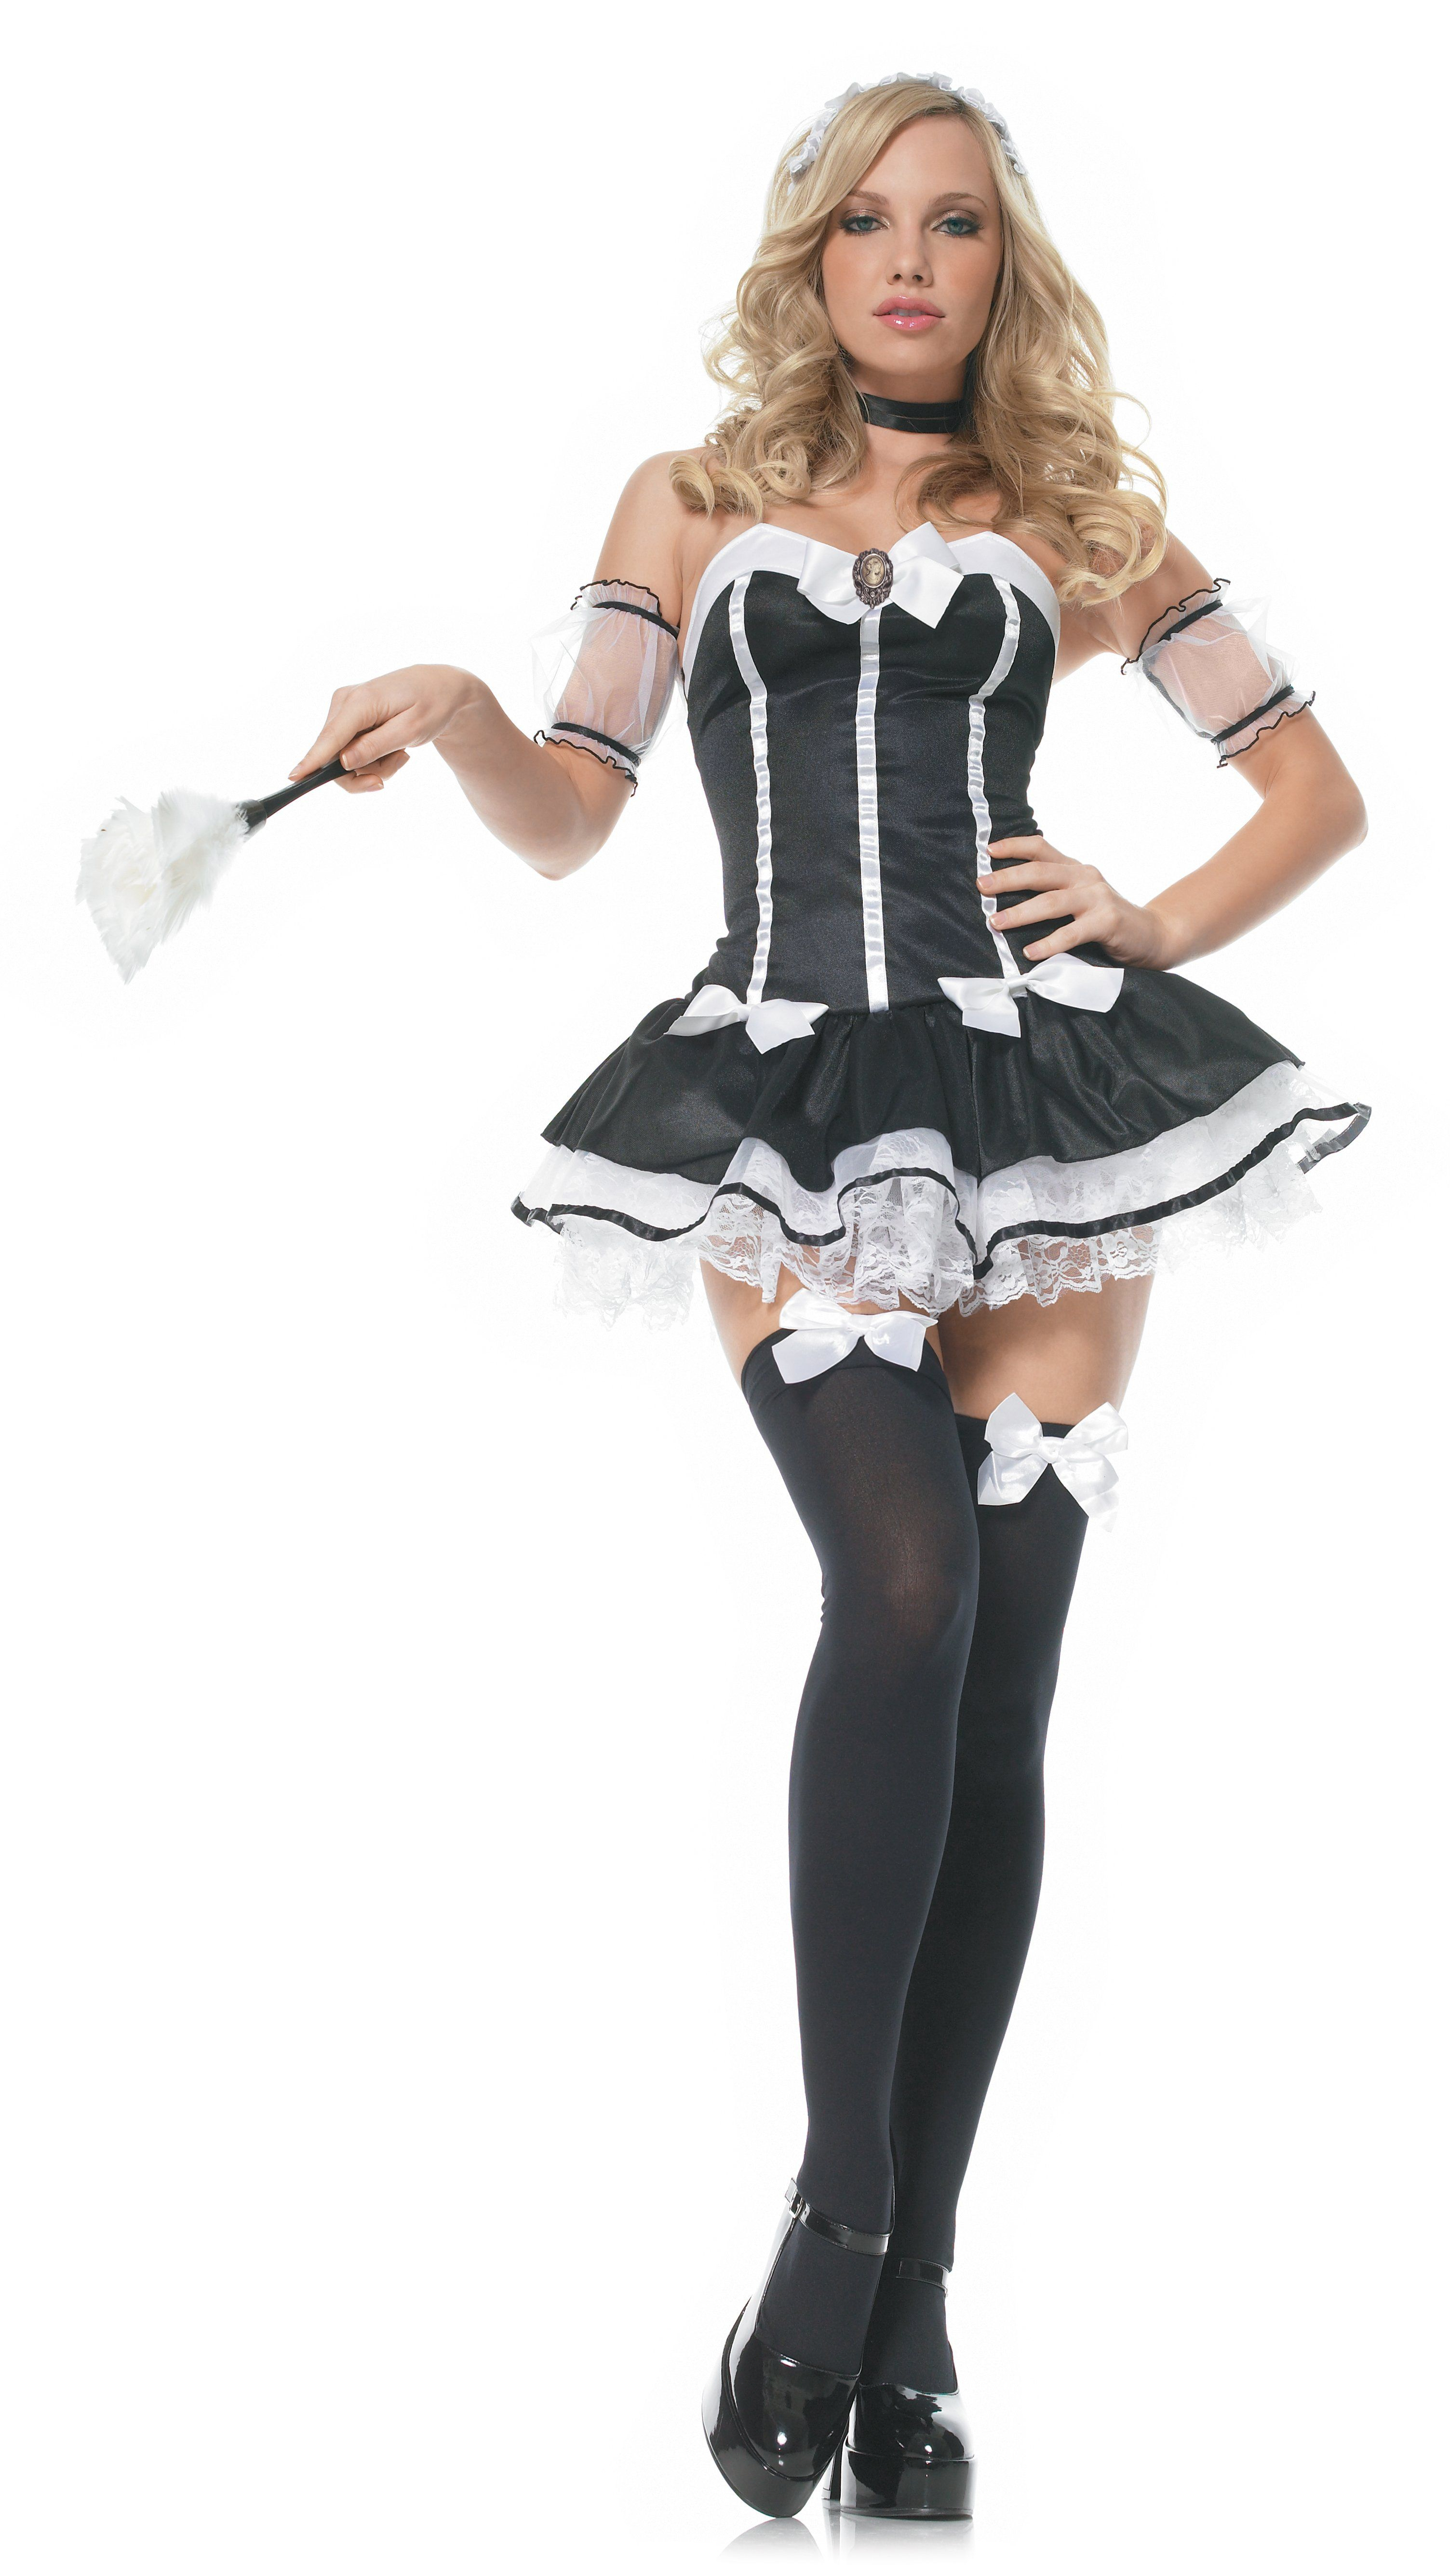 Feather Duster French Maid Chamber Dress Up Halloween Costume Accessory 2 COLORS